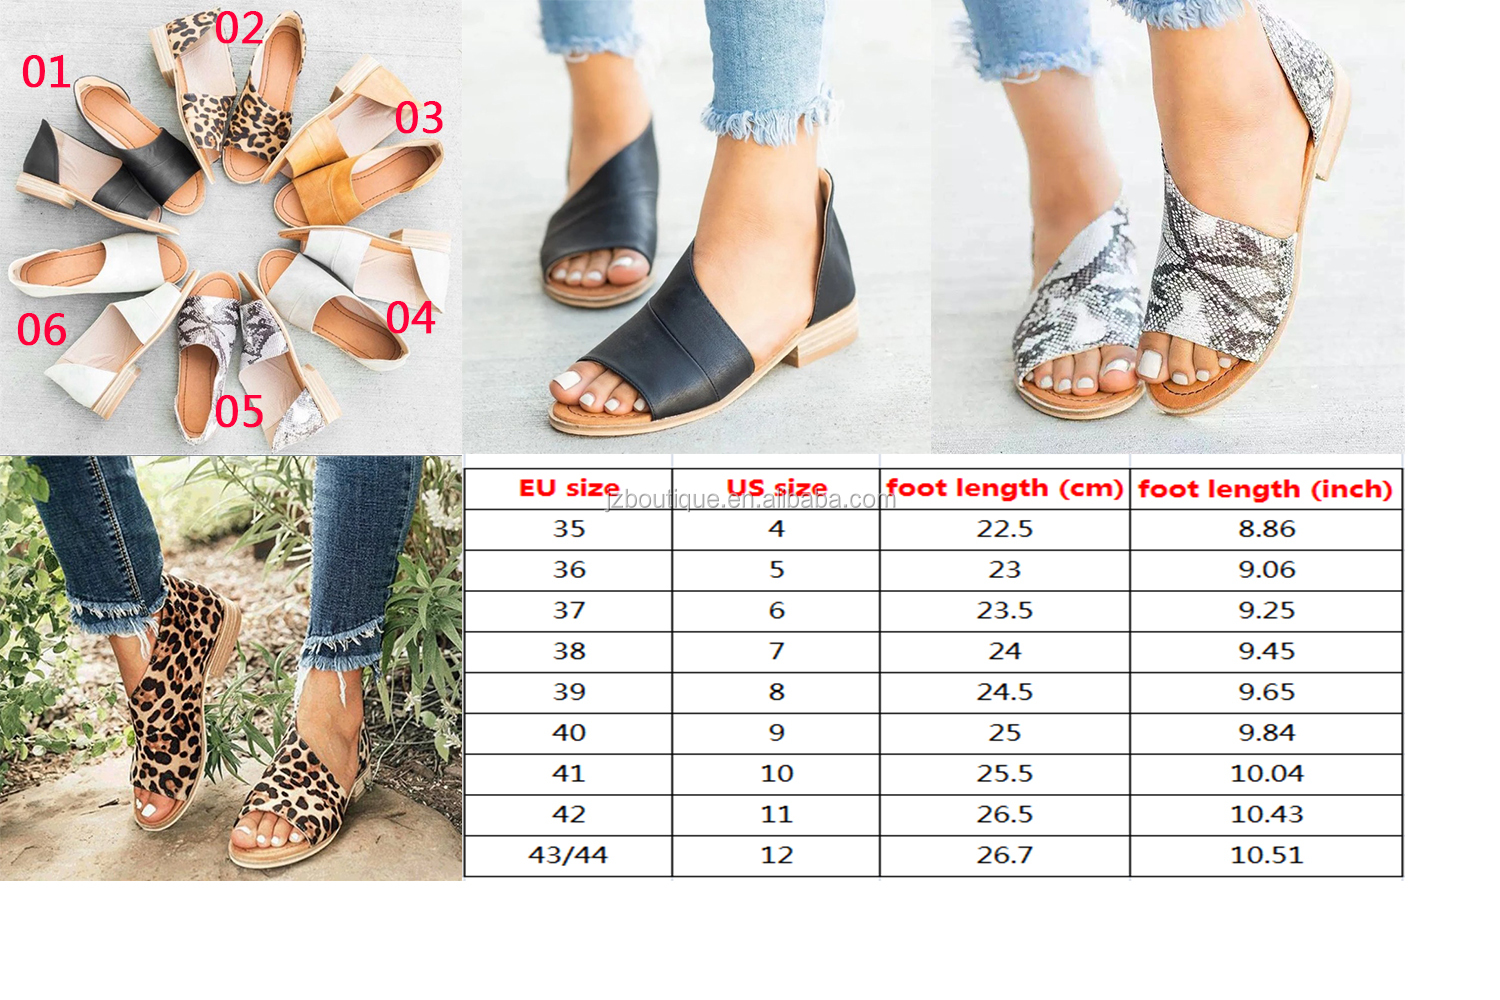 JUNZHI 2019 High-heeled Shoes Bottom Waterproof Platform Shoes Leather Women's fitness Sandals With Flower print